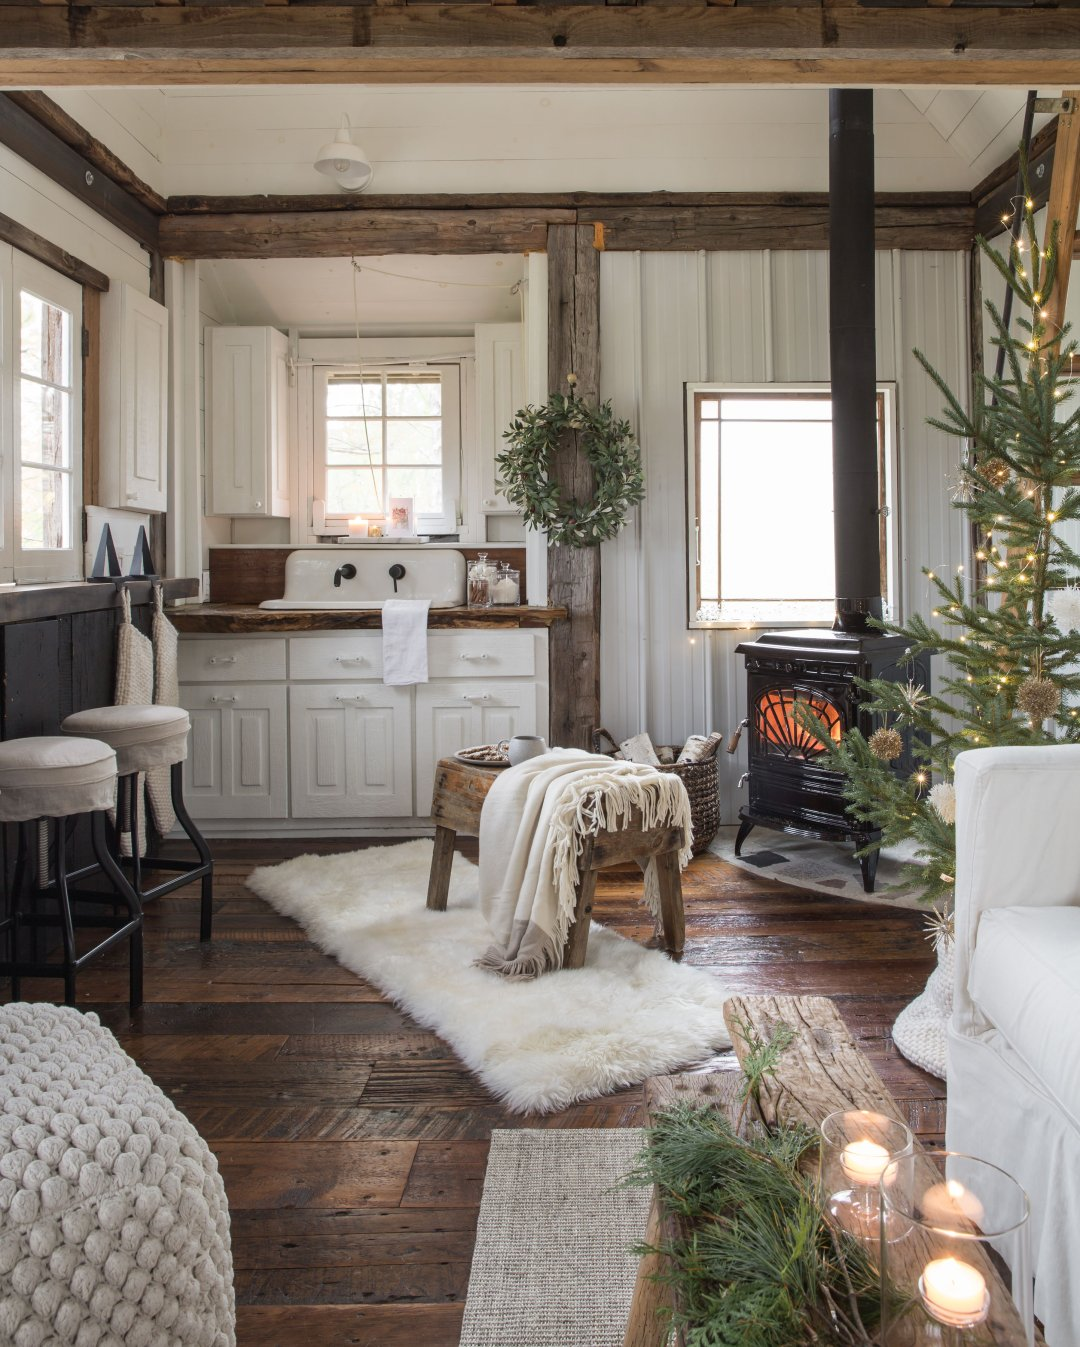 10 Cozy Holiday Decorating Ideas For Small Spaces Crate